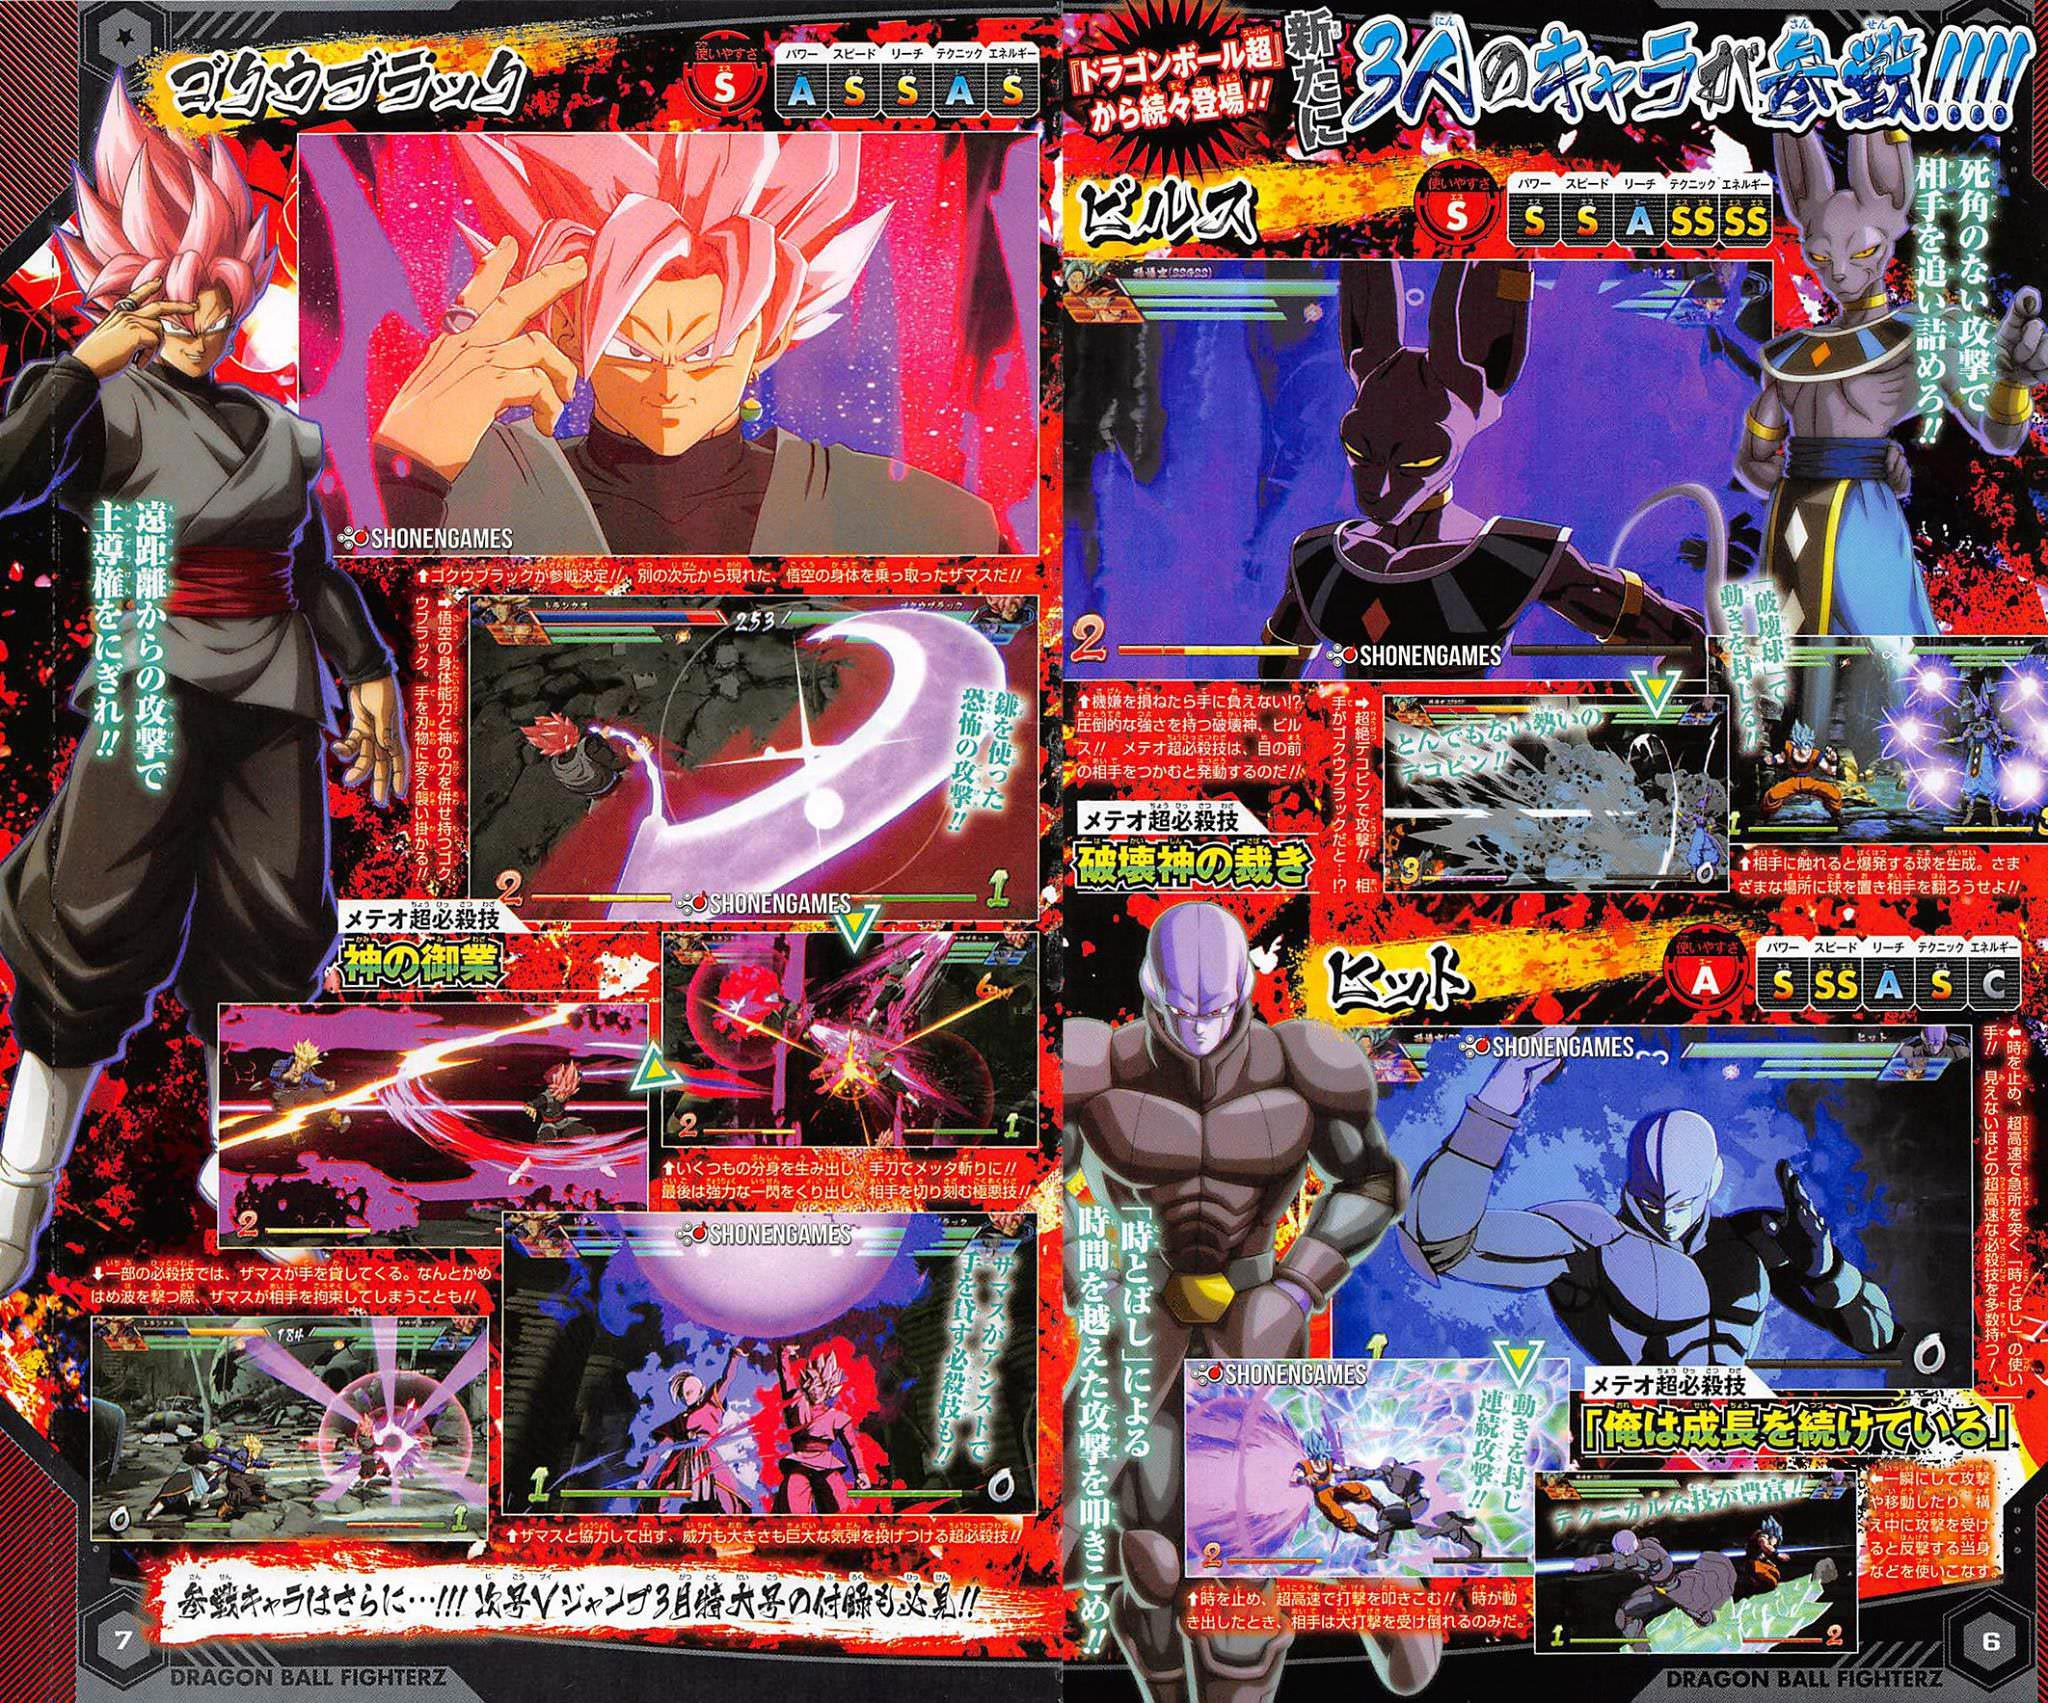 Goku Black, Beerus, and Hit Dragon Ball FighterZ scan 1 out of 2 image gallery